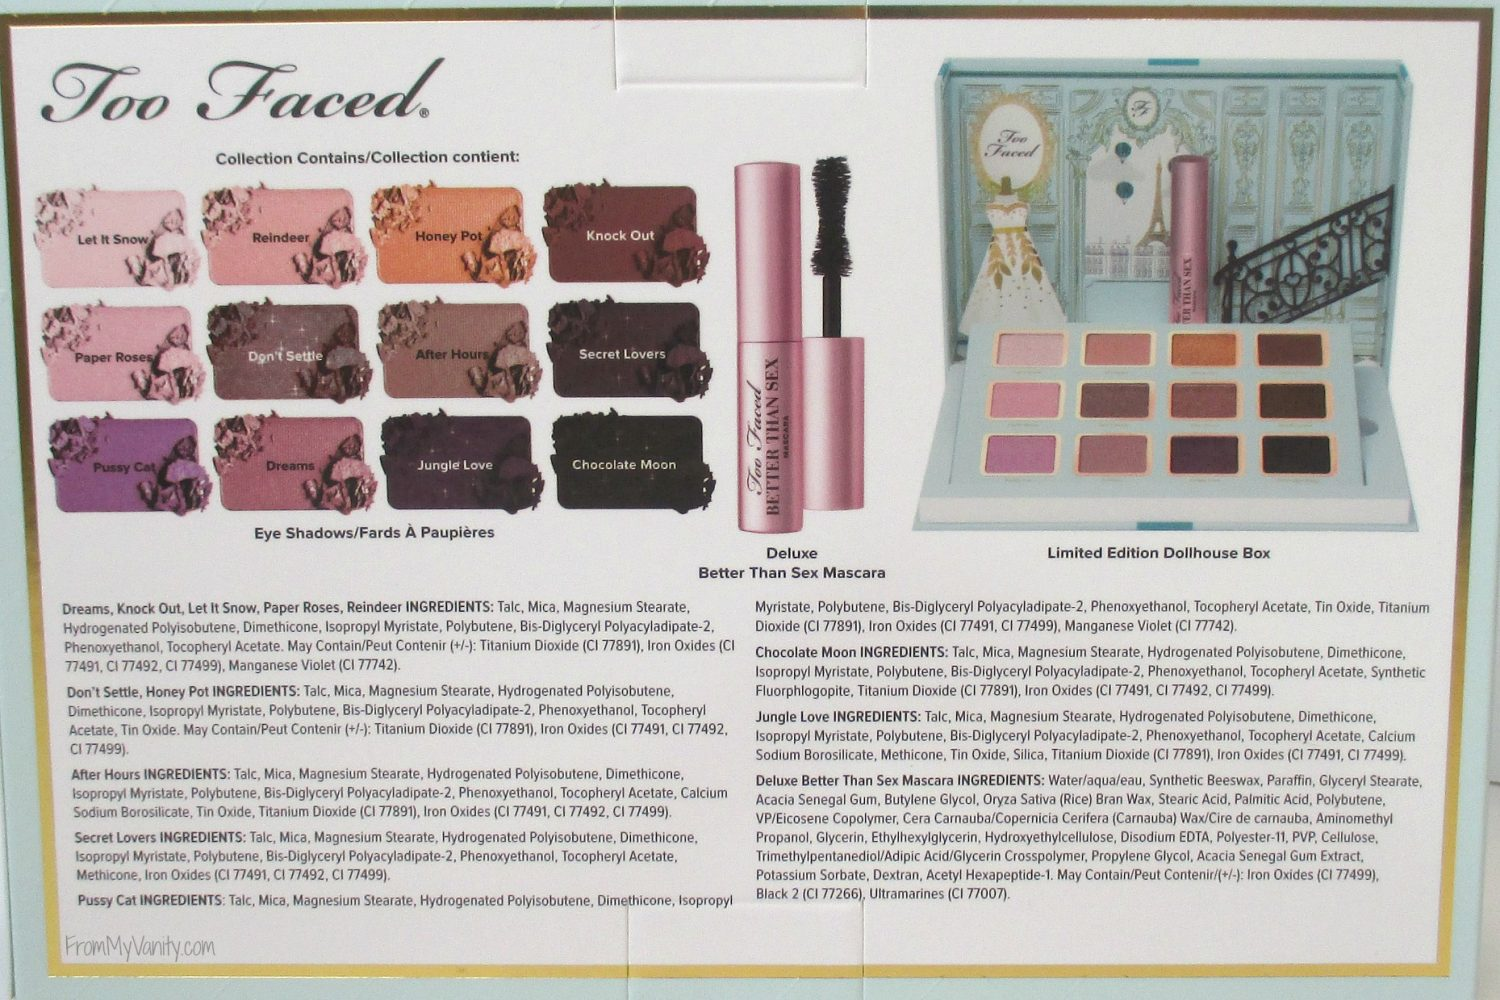 Too Faced La Petite Maison (Ulta Exclusive) Review & Swatches